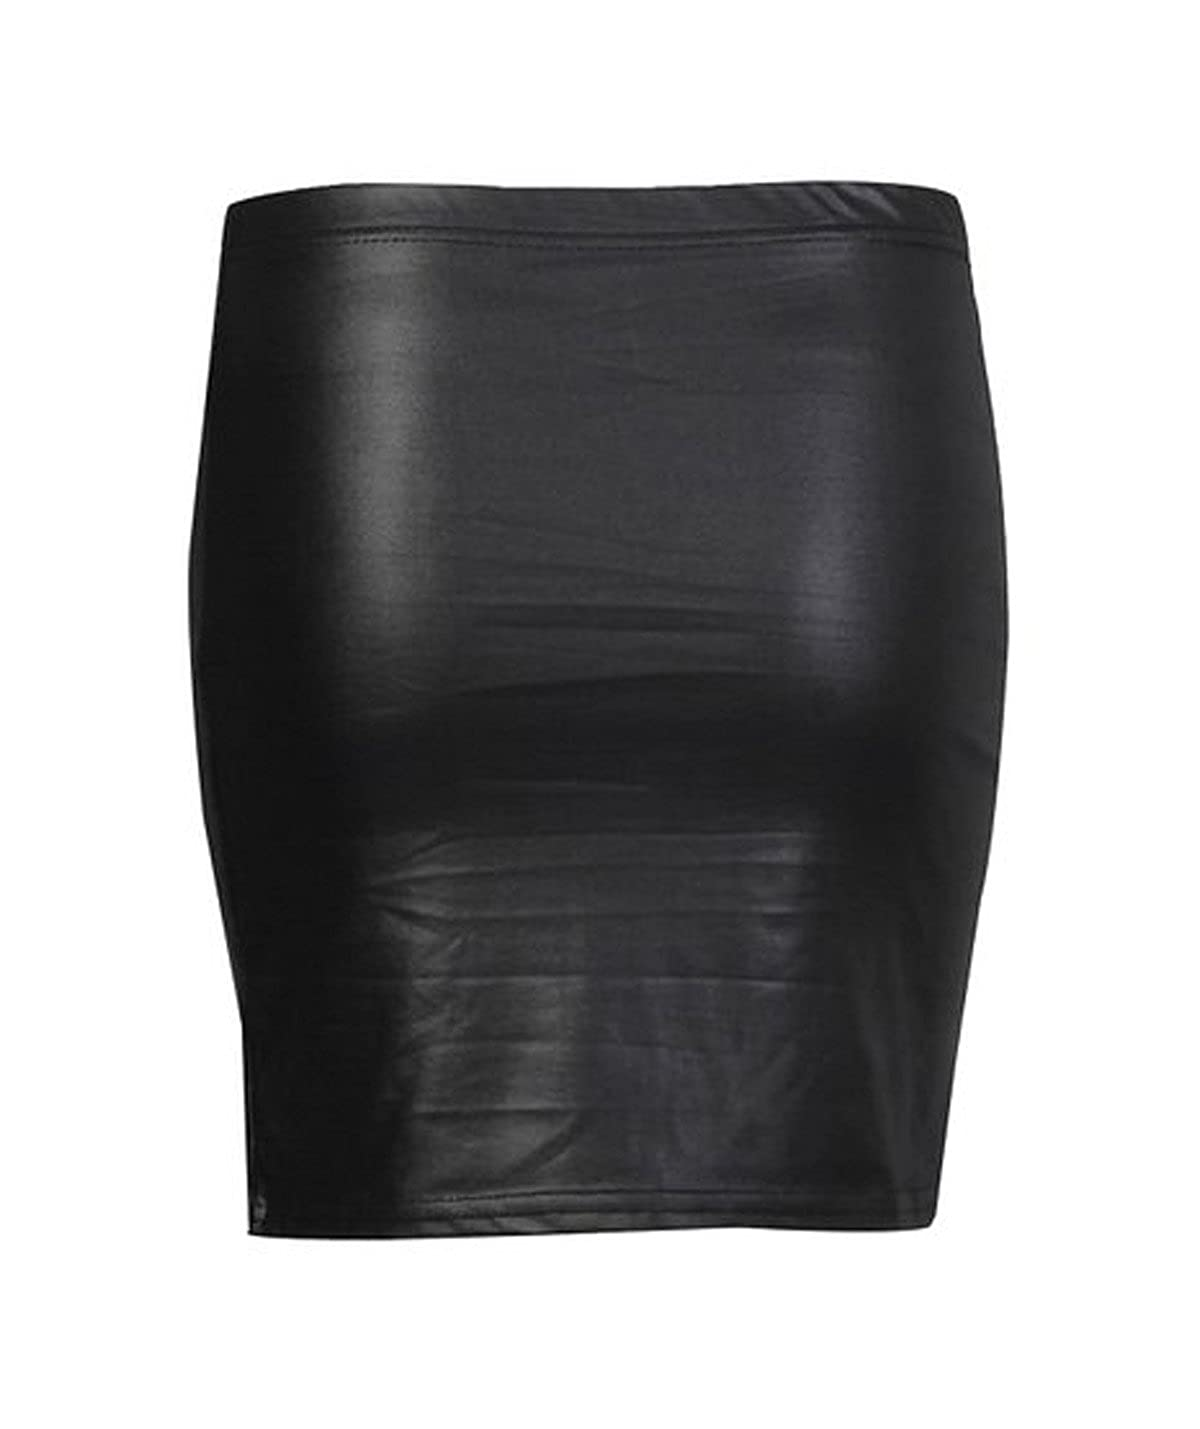 38832e9a3bcaa Amazon.com: FashionMark Womens Plus Size Wet Look Faux Leather Mini Skirt  Ladies Celebrity PVC Leather Skirt - Black - Sizes 6-18: Clothing